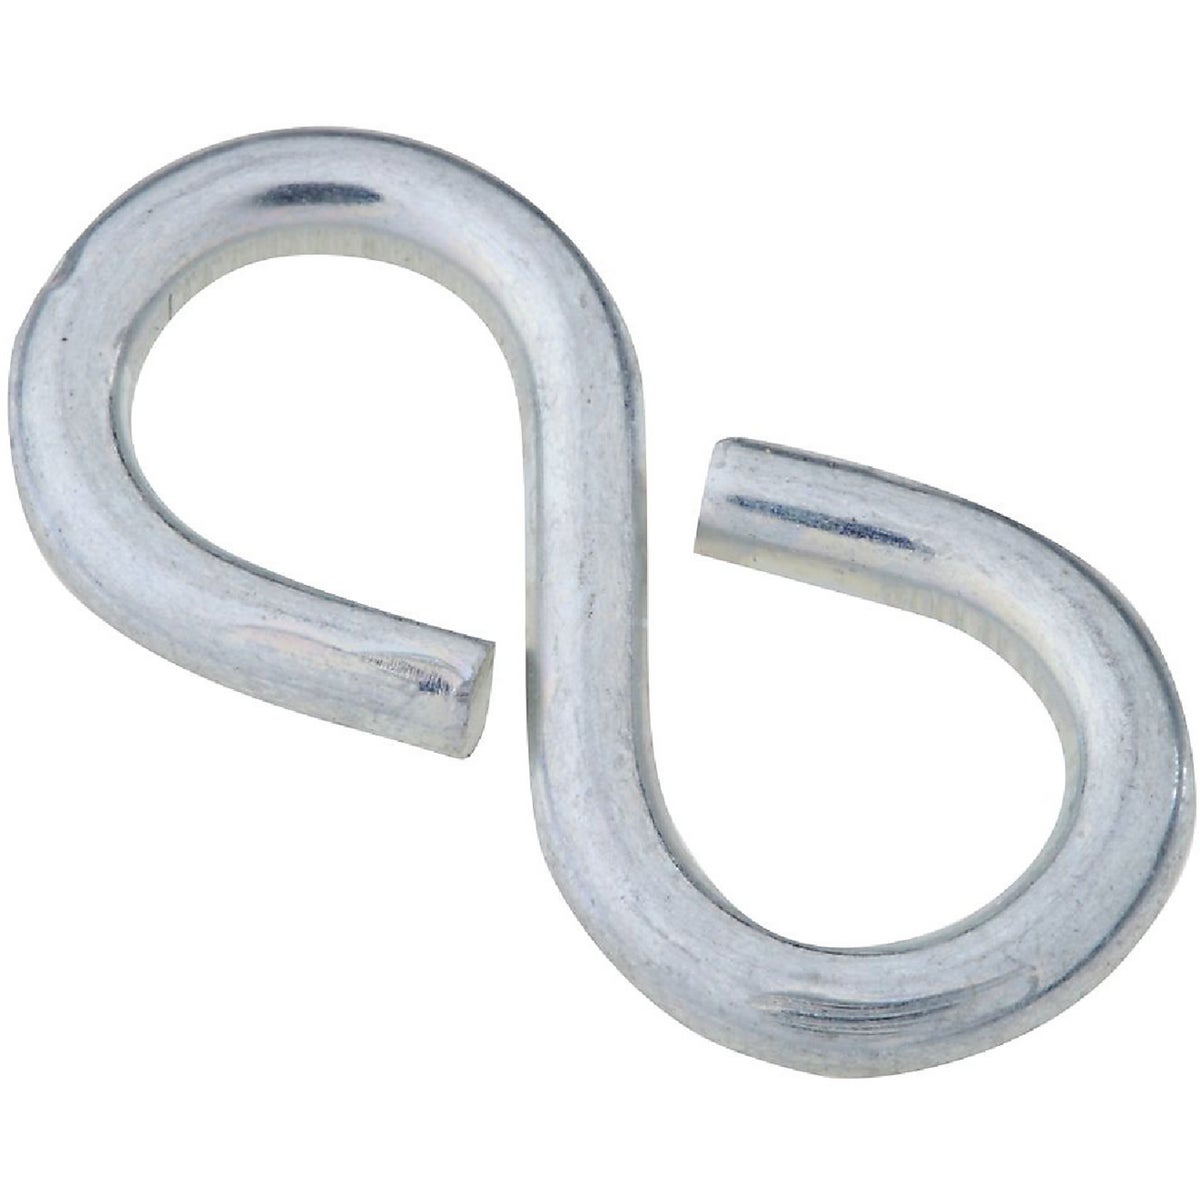 #811 LIGHT CLOSED S HOOK - N121343 by National Mfg Co